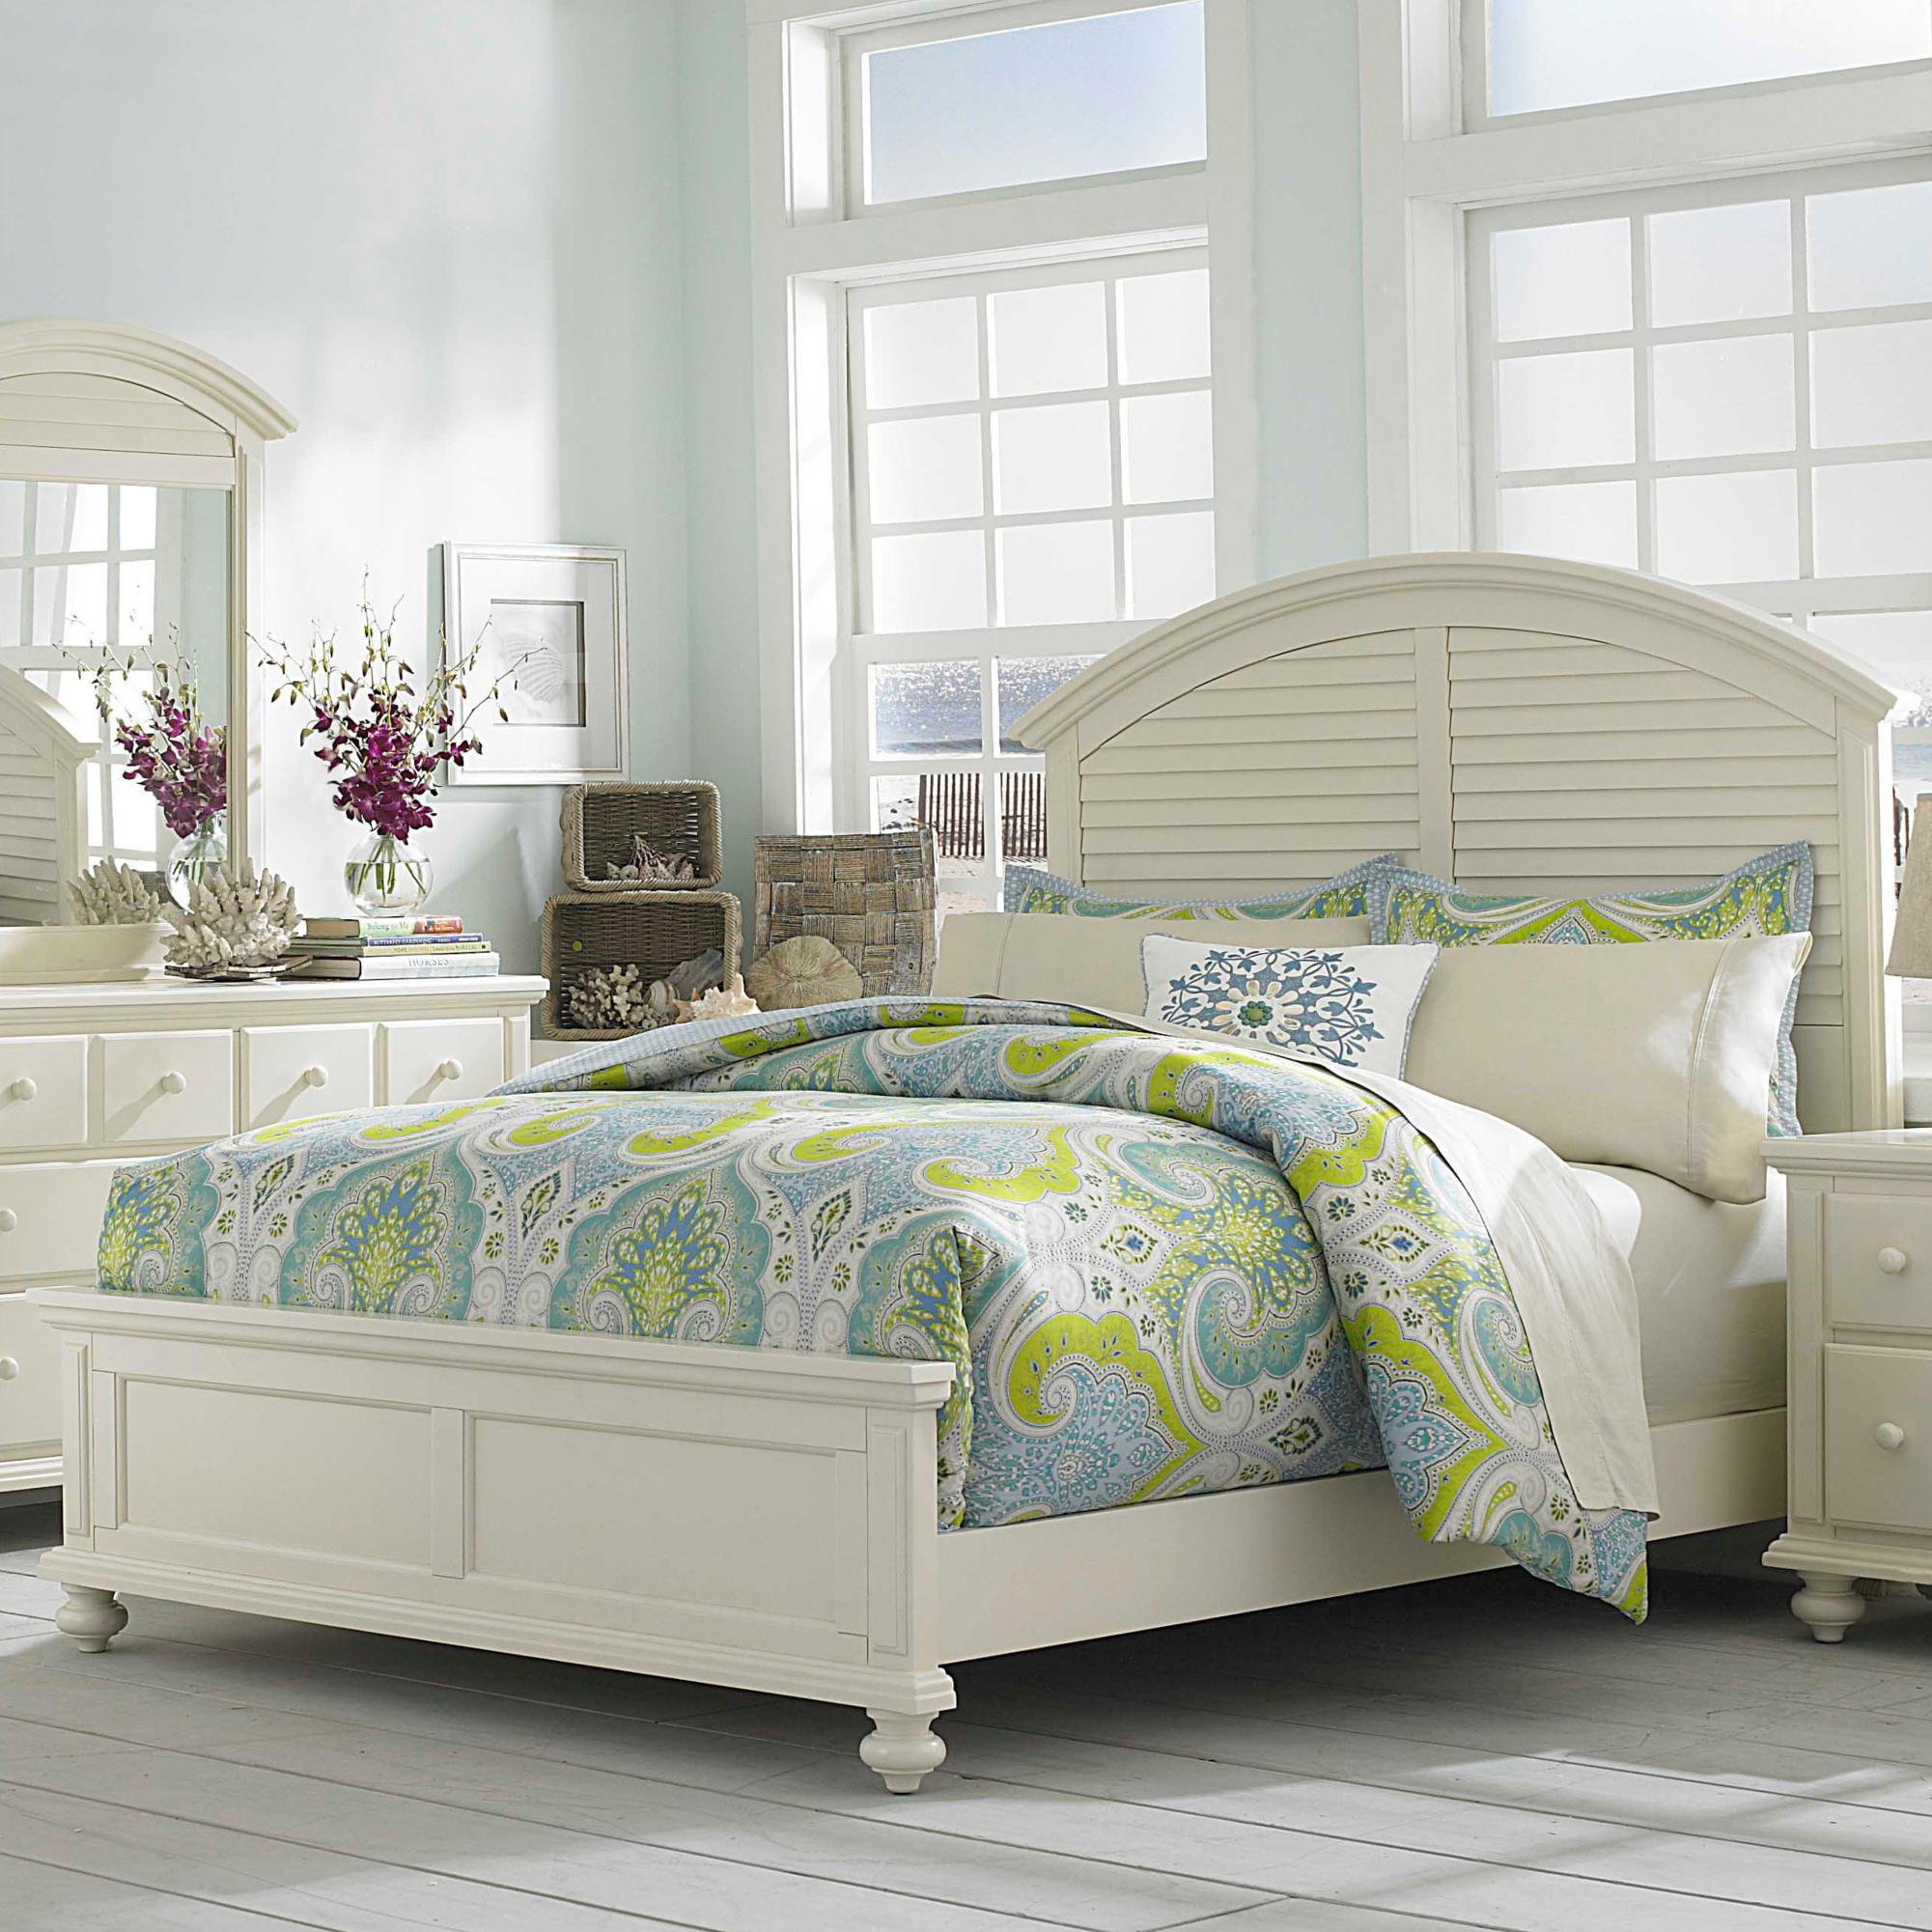 retreat cottage sd by to headboards hover design zoom set furniture bedroom beds ashley signature